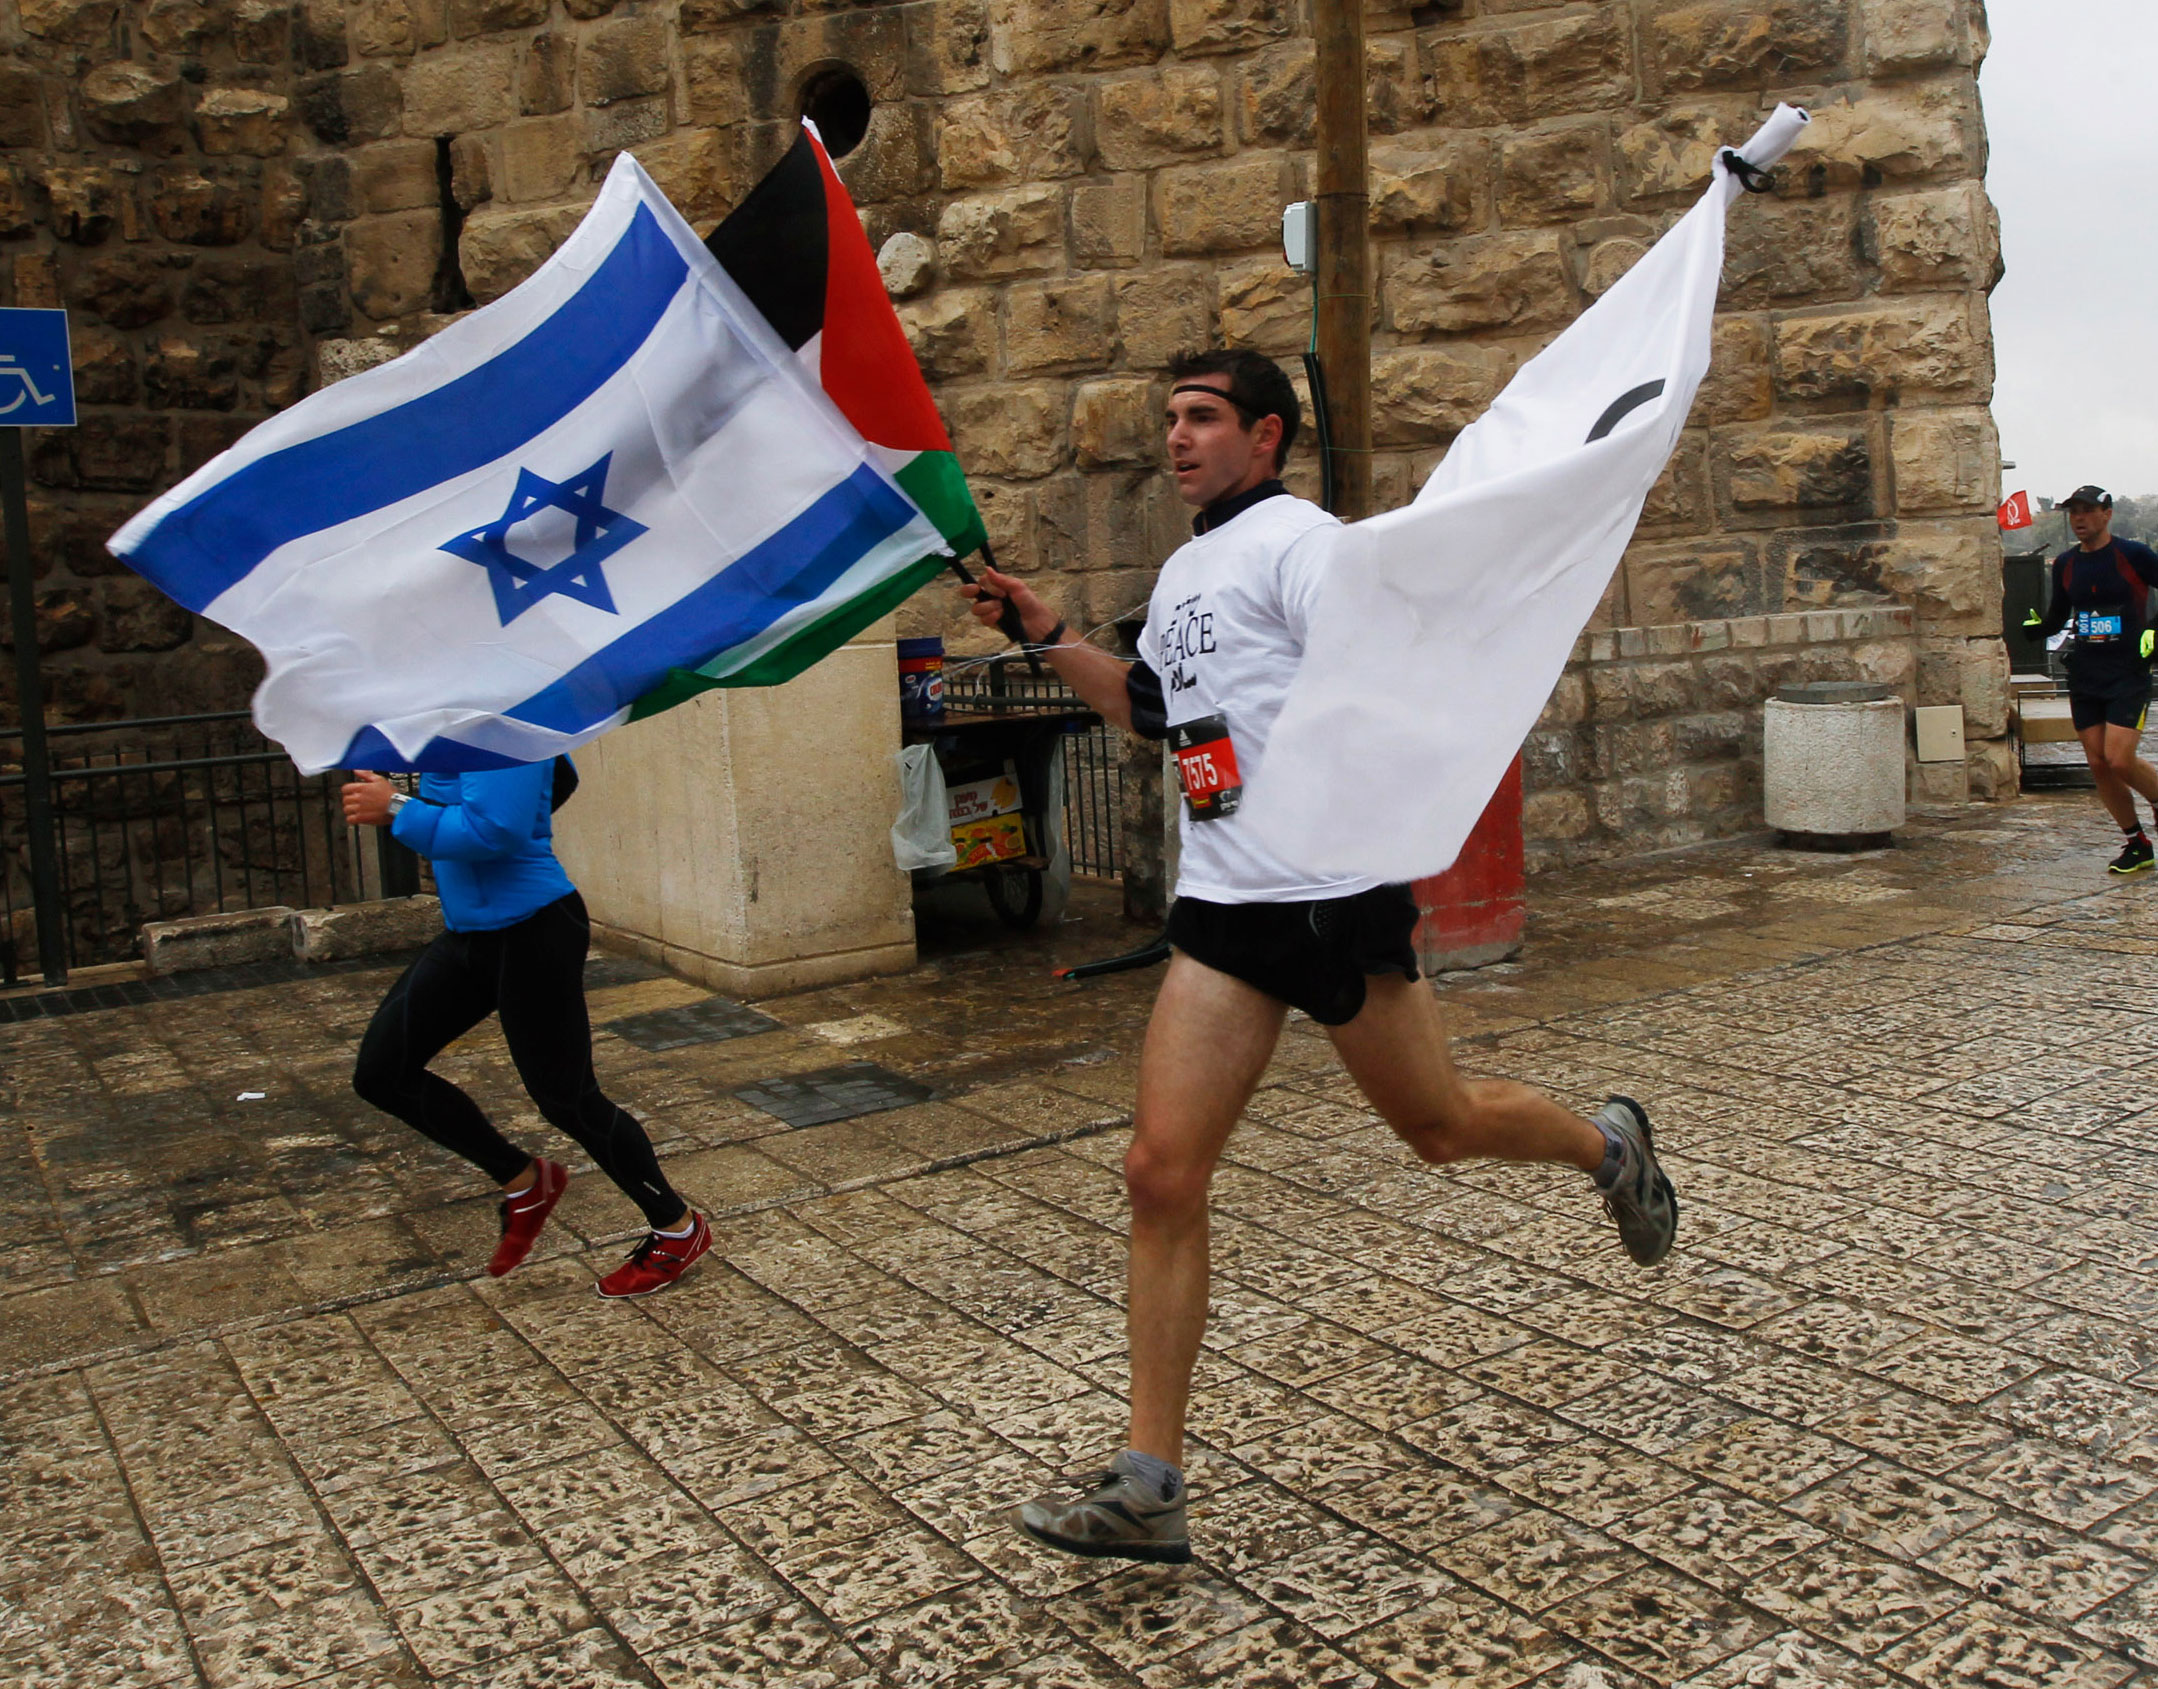 A runner holds an Israeli and Palestinian flag as he takes part in the Jerusalem Marathon. (Getty Images)